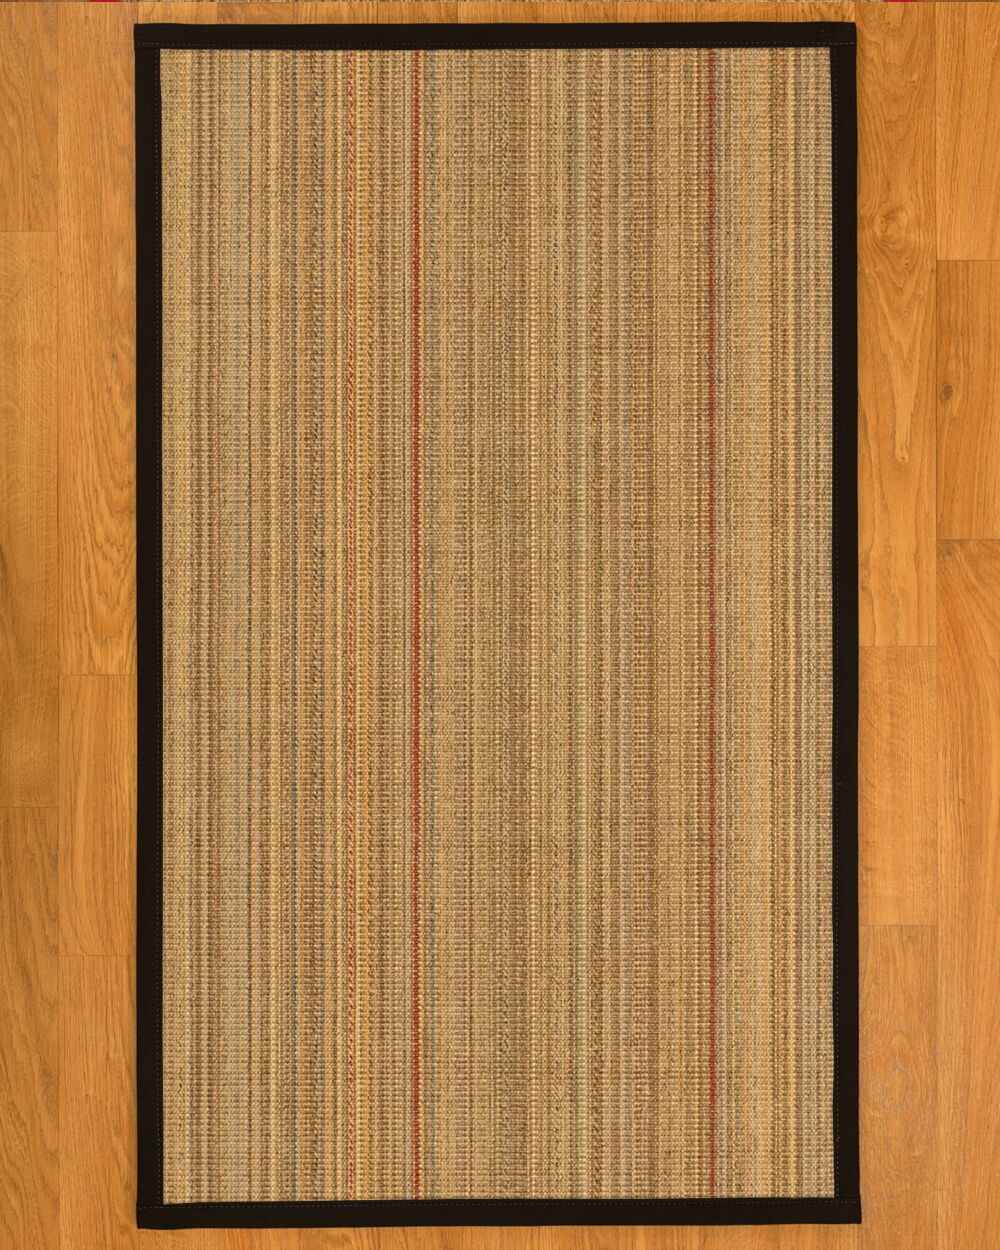 Aura Hand-Woven Beige Area Rug Rug Size: Rectangle 9' x 12'